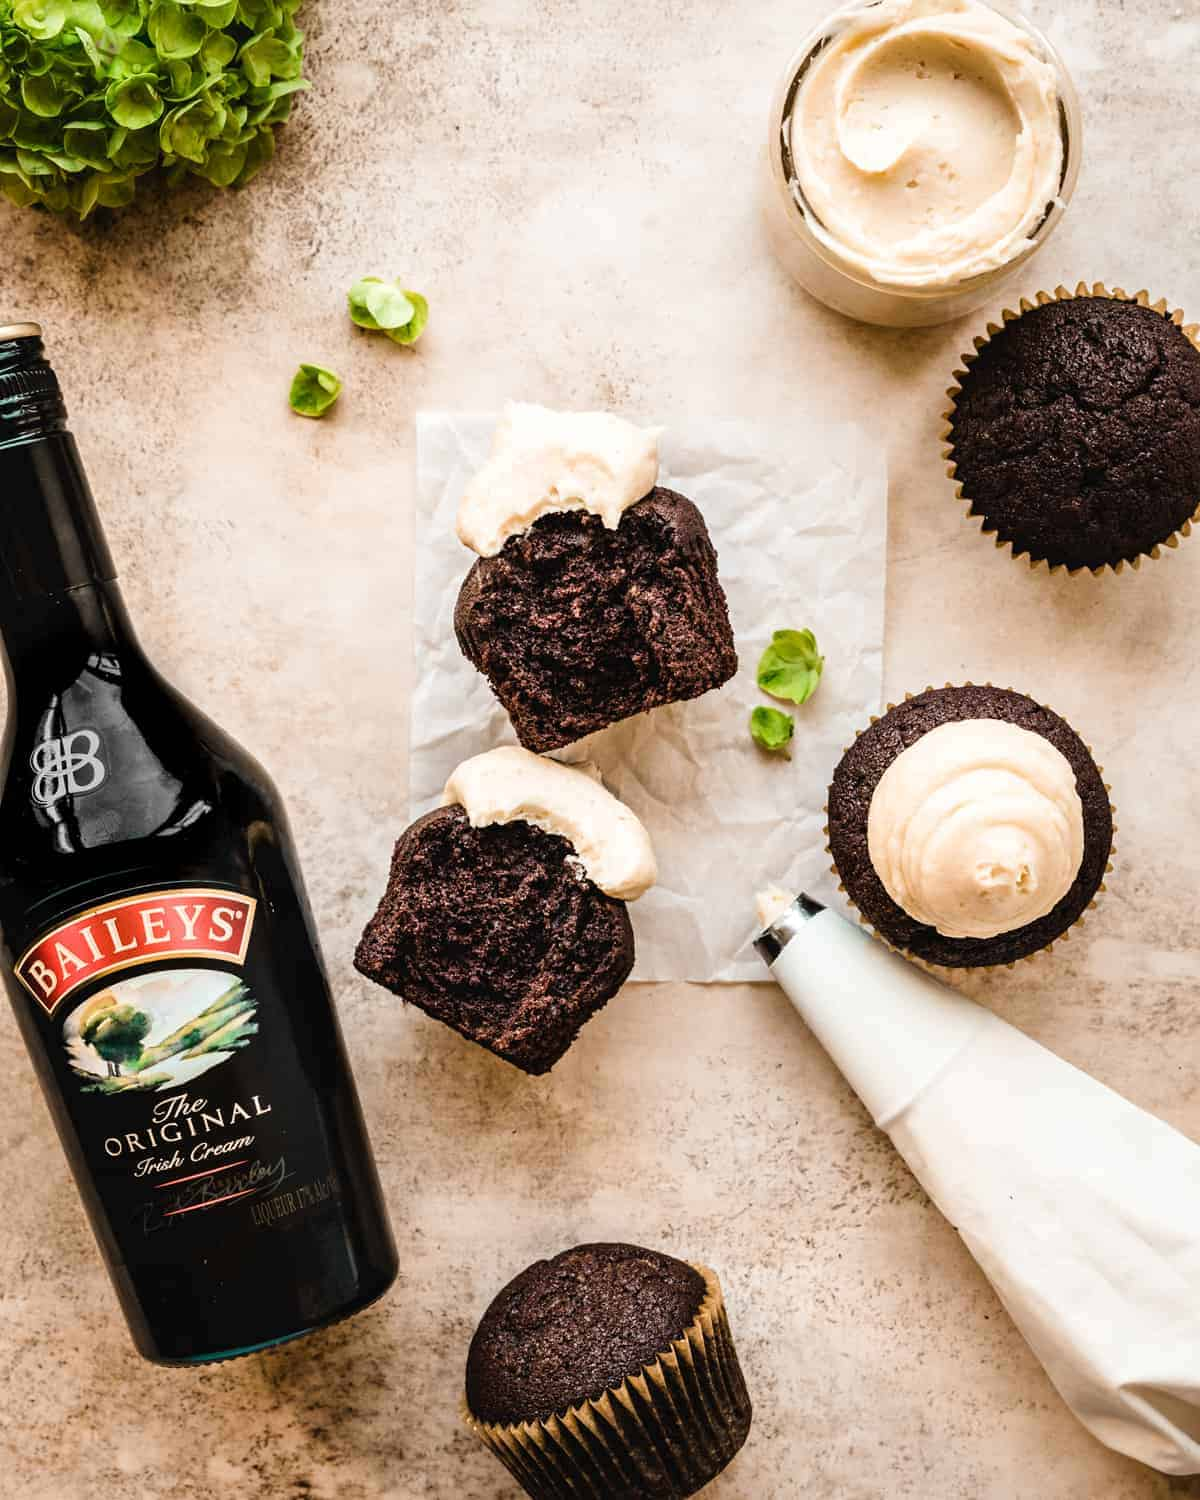 chocolate cupcakes with baileys buttercream and a bottle of baileys next to them